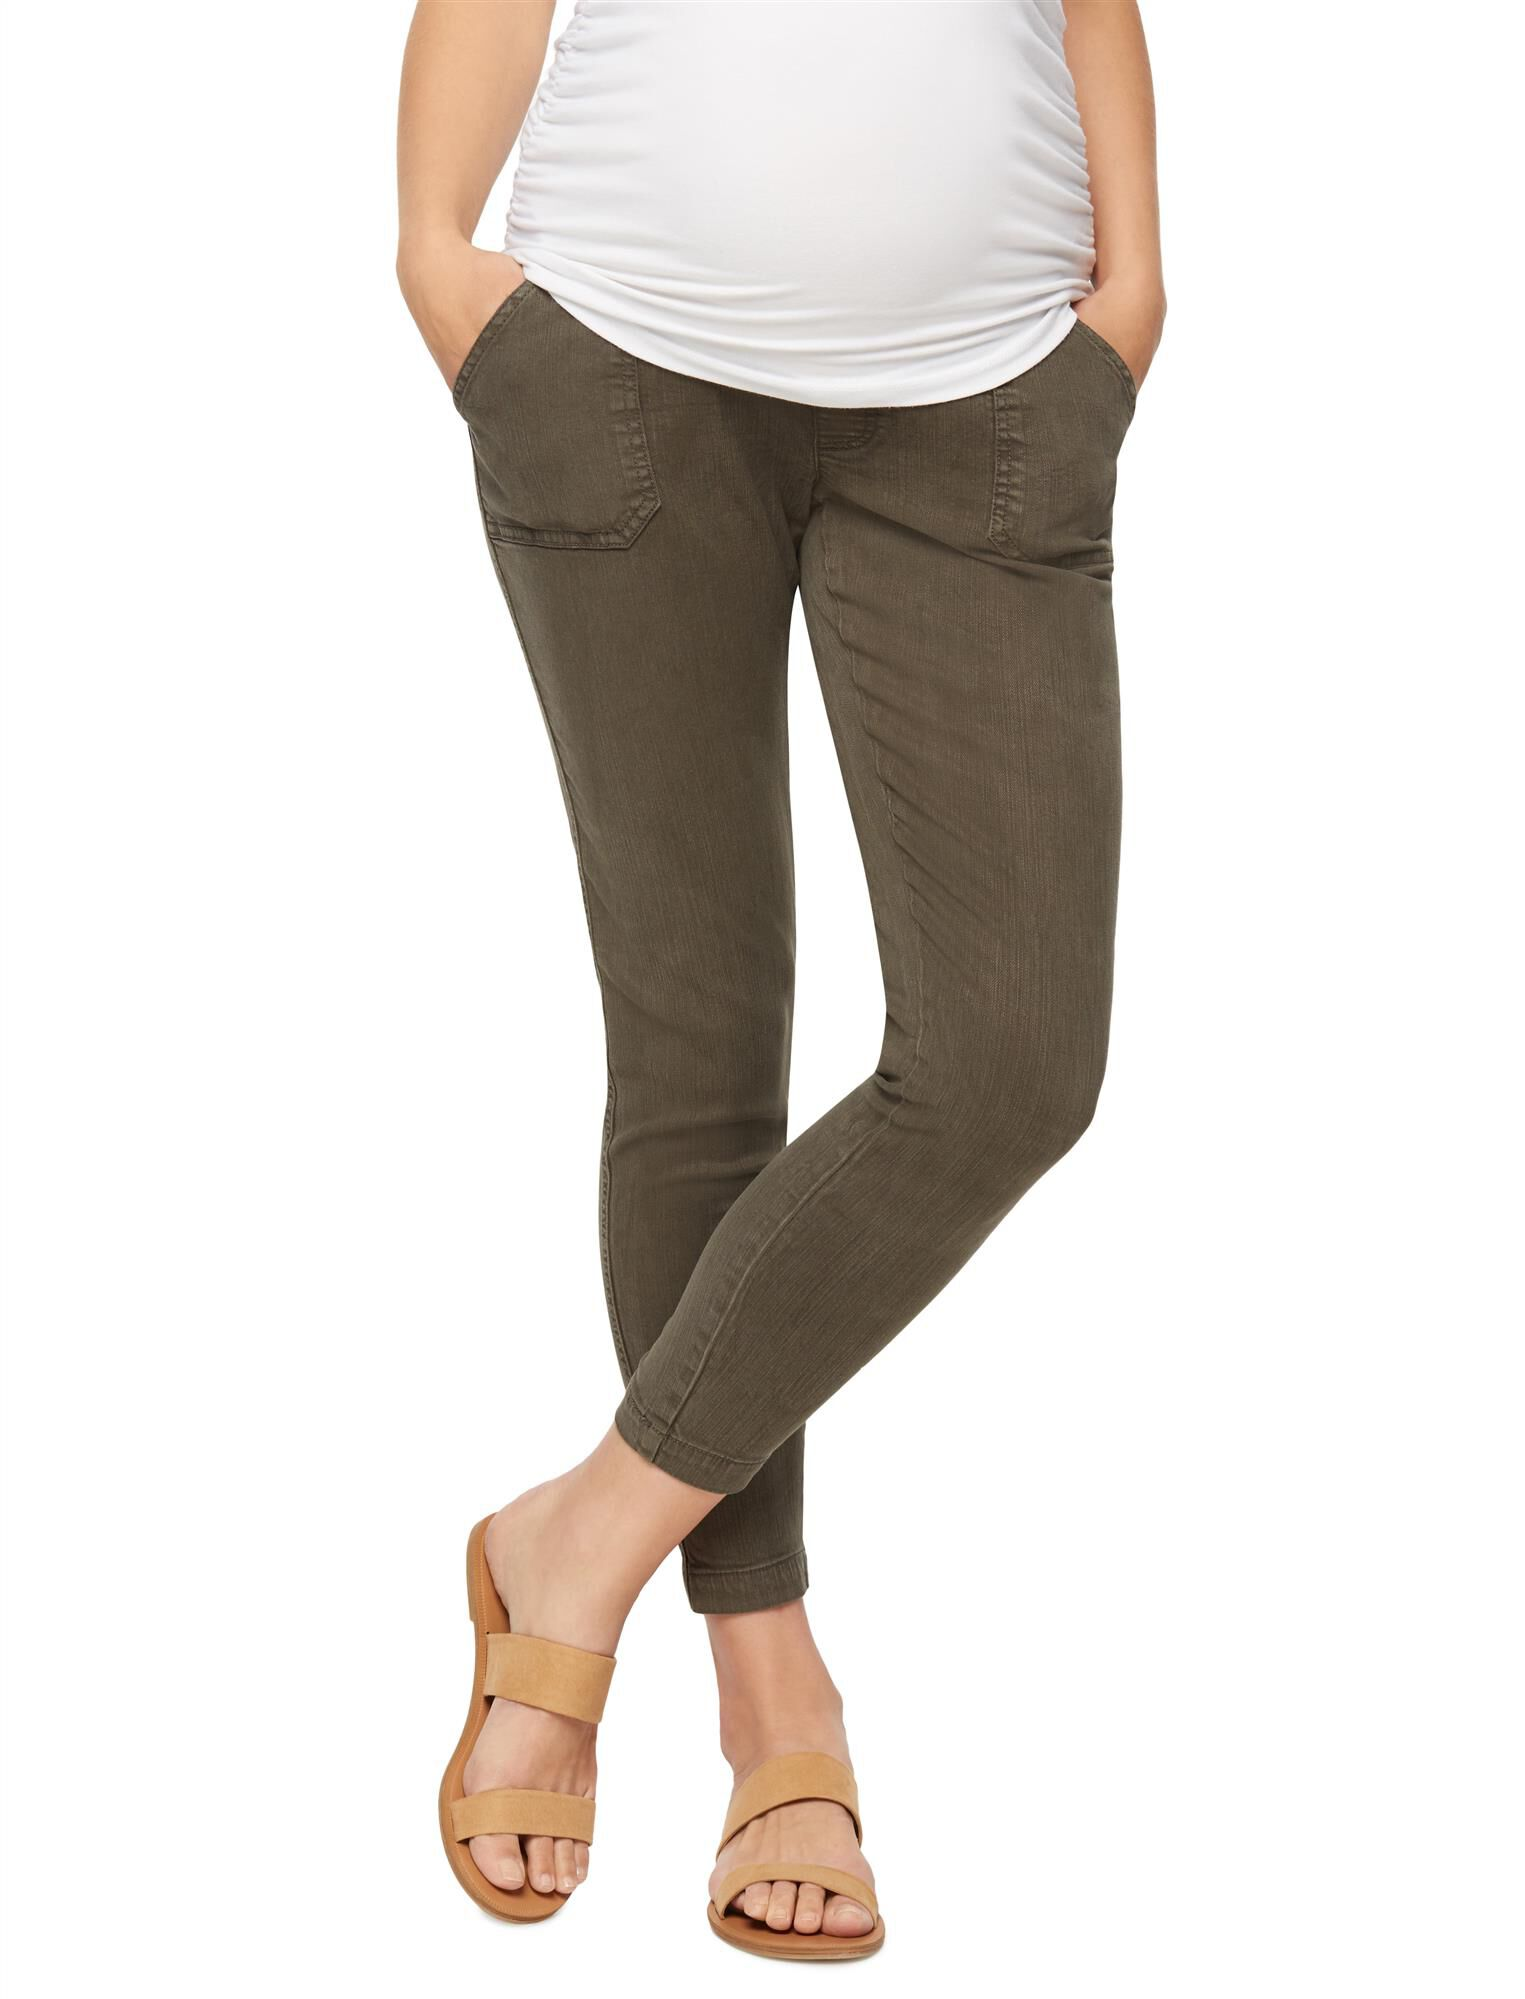 Secret Fit Belly Twill Ankle Maternity Pants